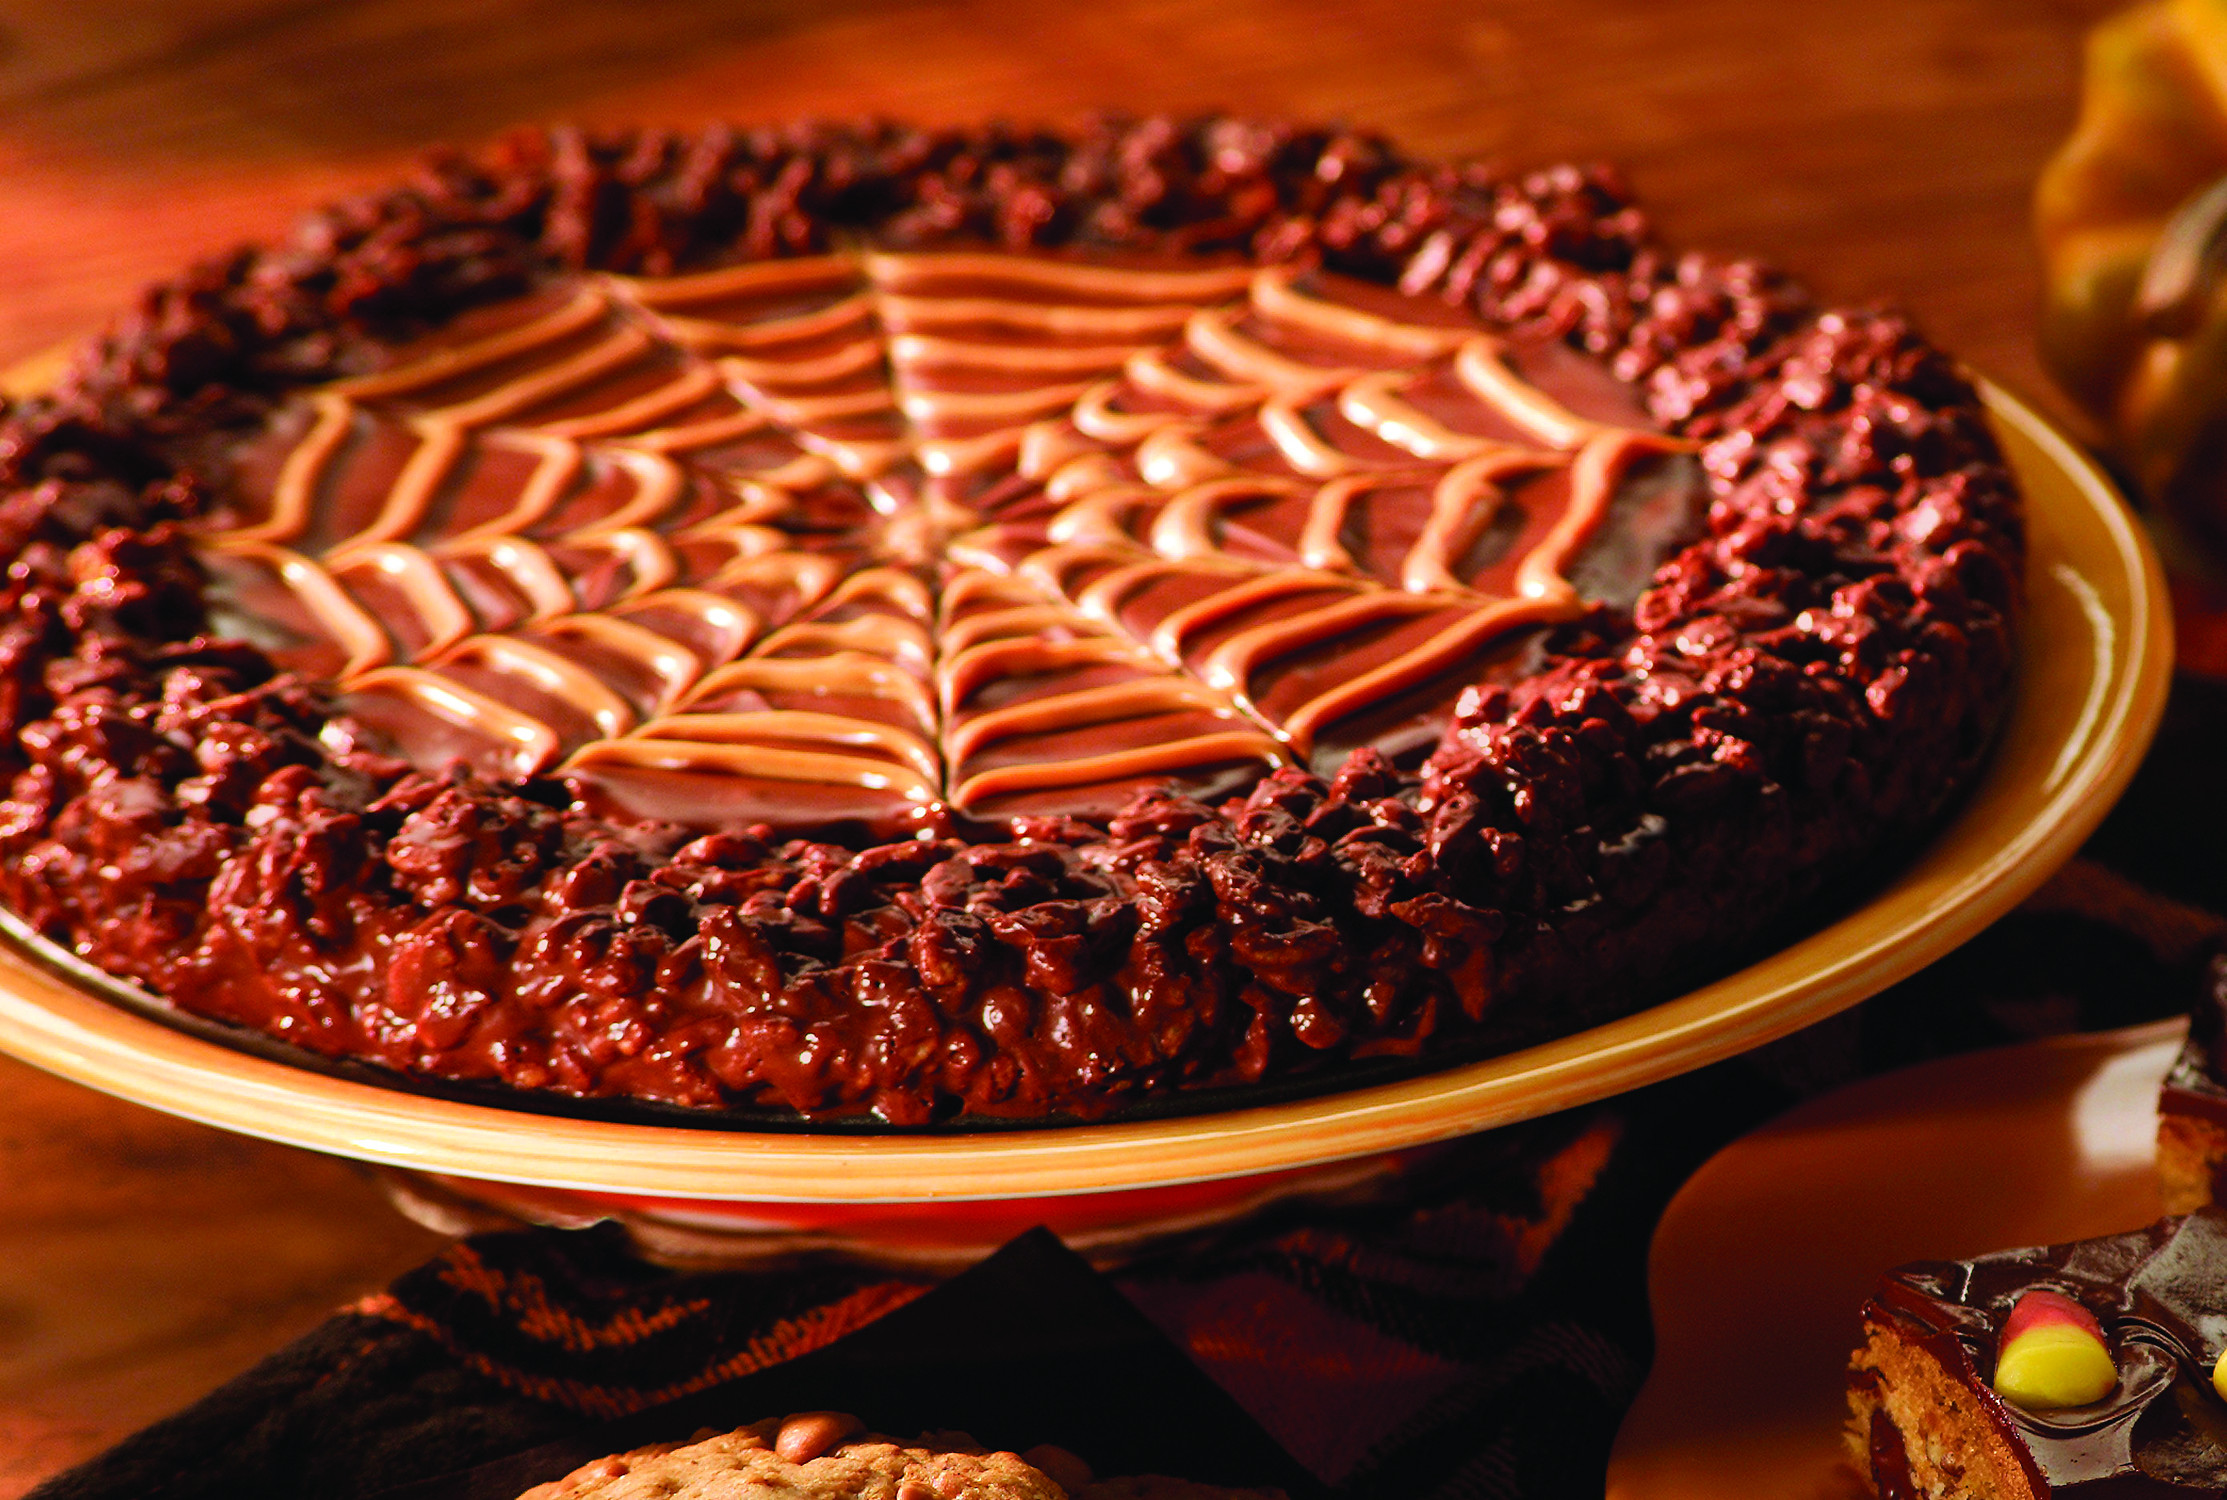 Halloween Dessert Recipes  Two Recipes for Festive Halloween Desserts NY Metro